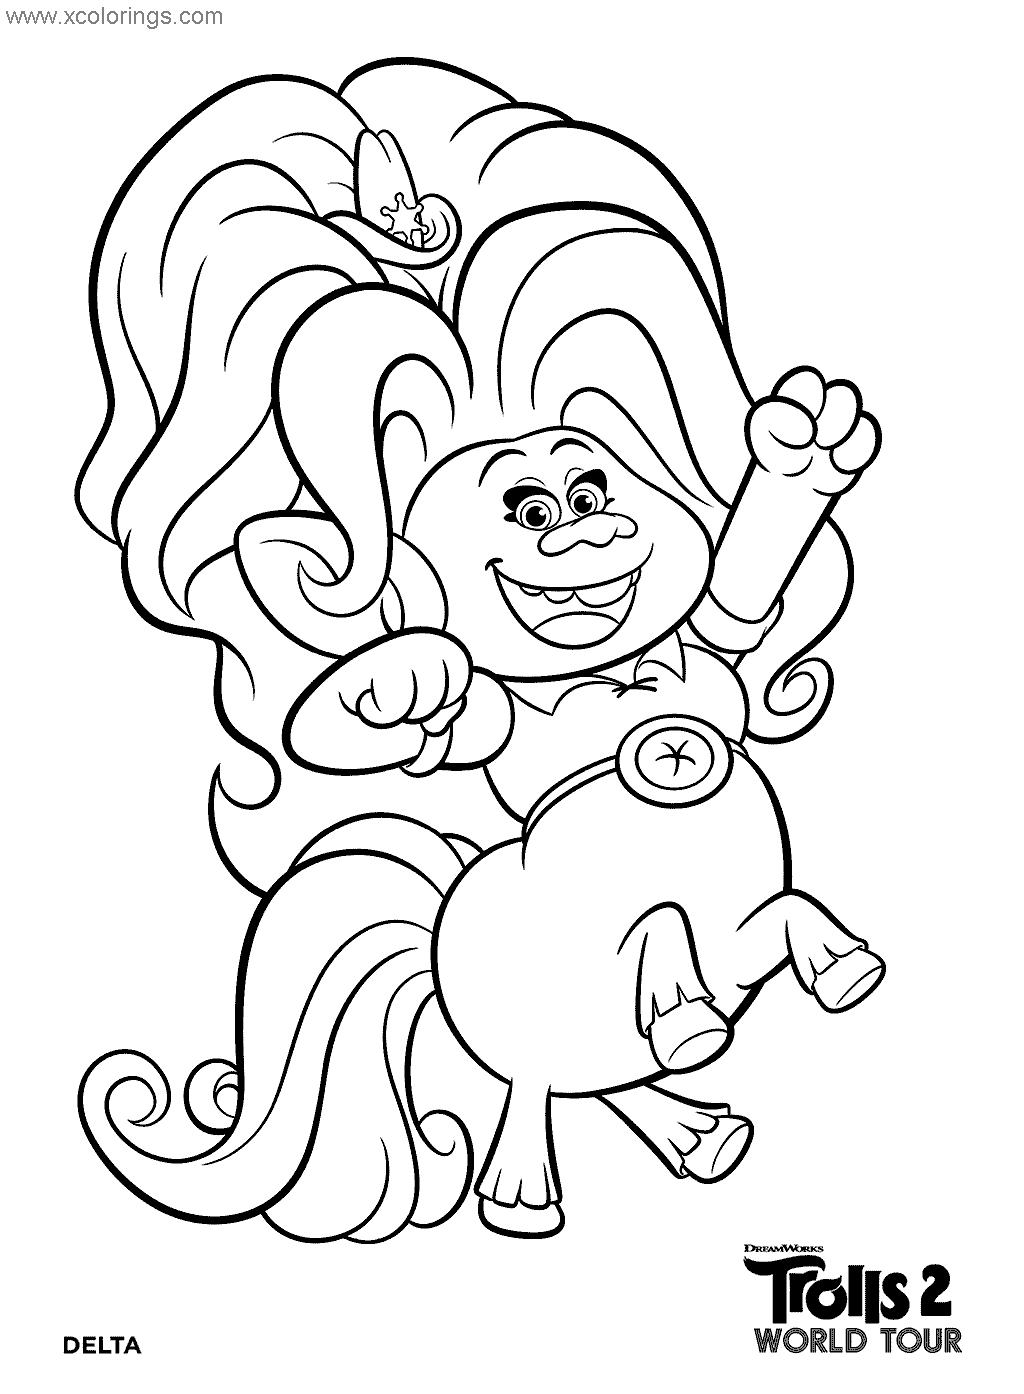 Printable Trolls 2 Queen Barb Pdf Coloring Page Crayola Coloring Pages Free Coloring Pages Birthday Coloring Pages